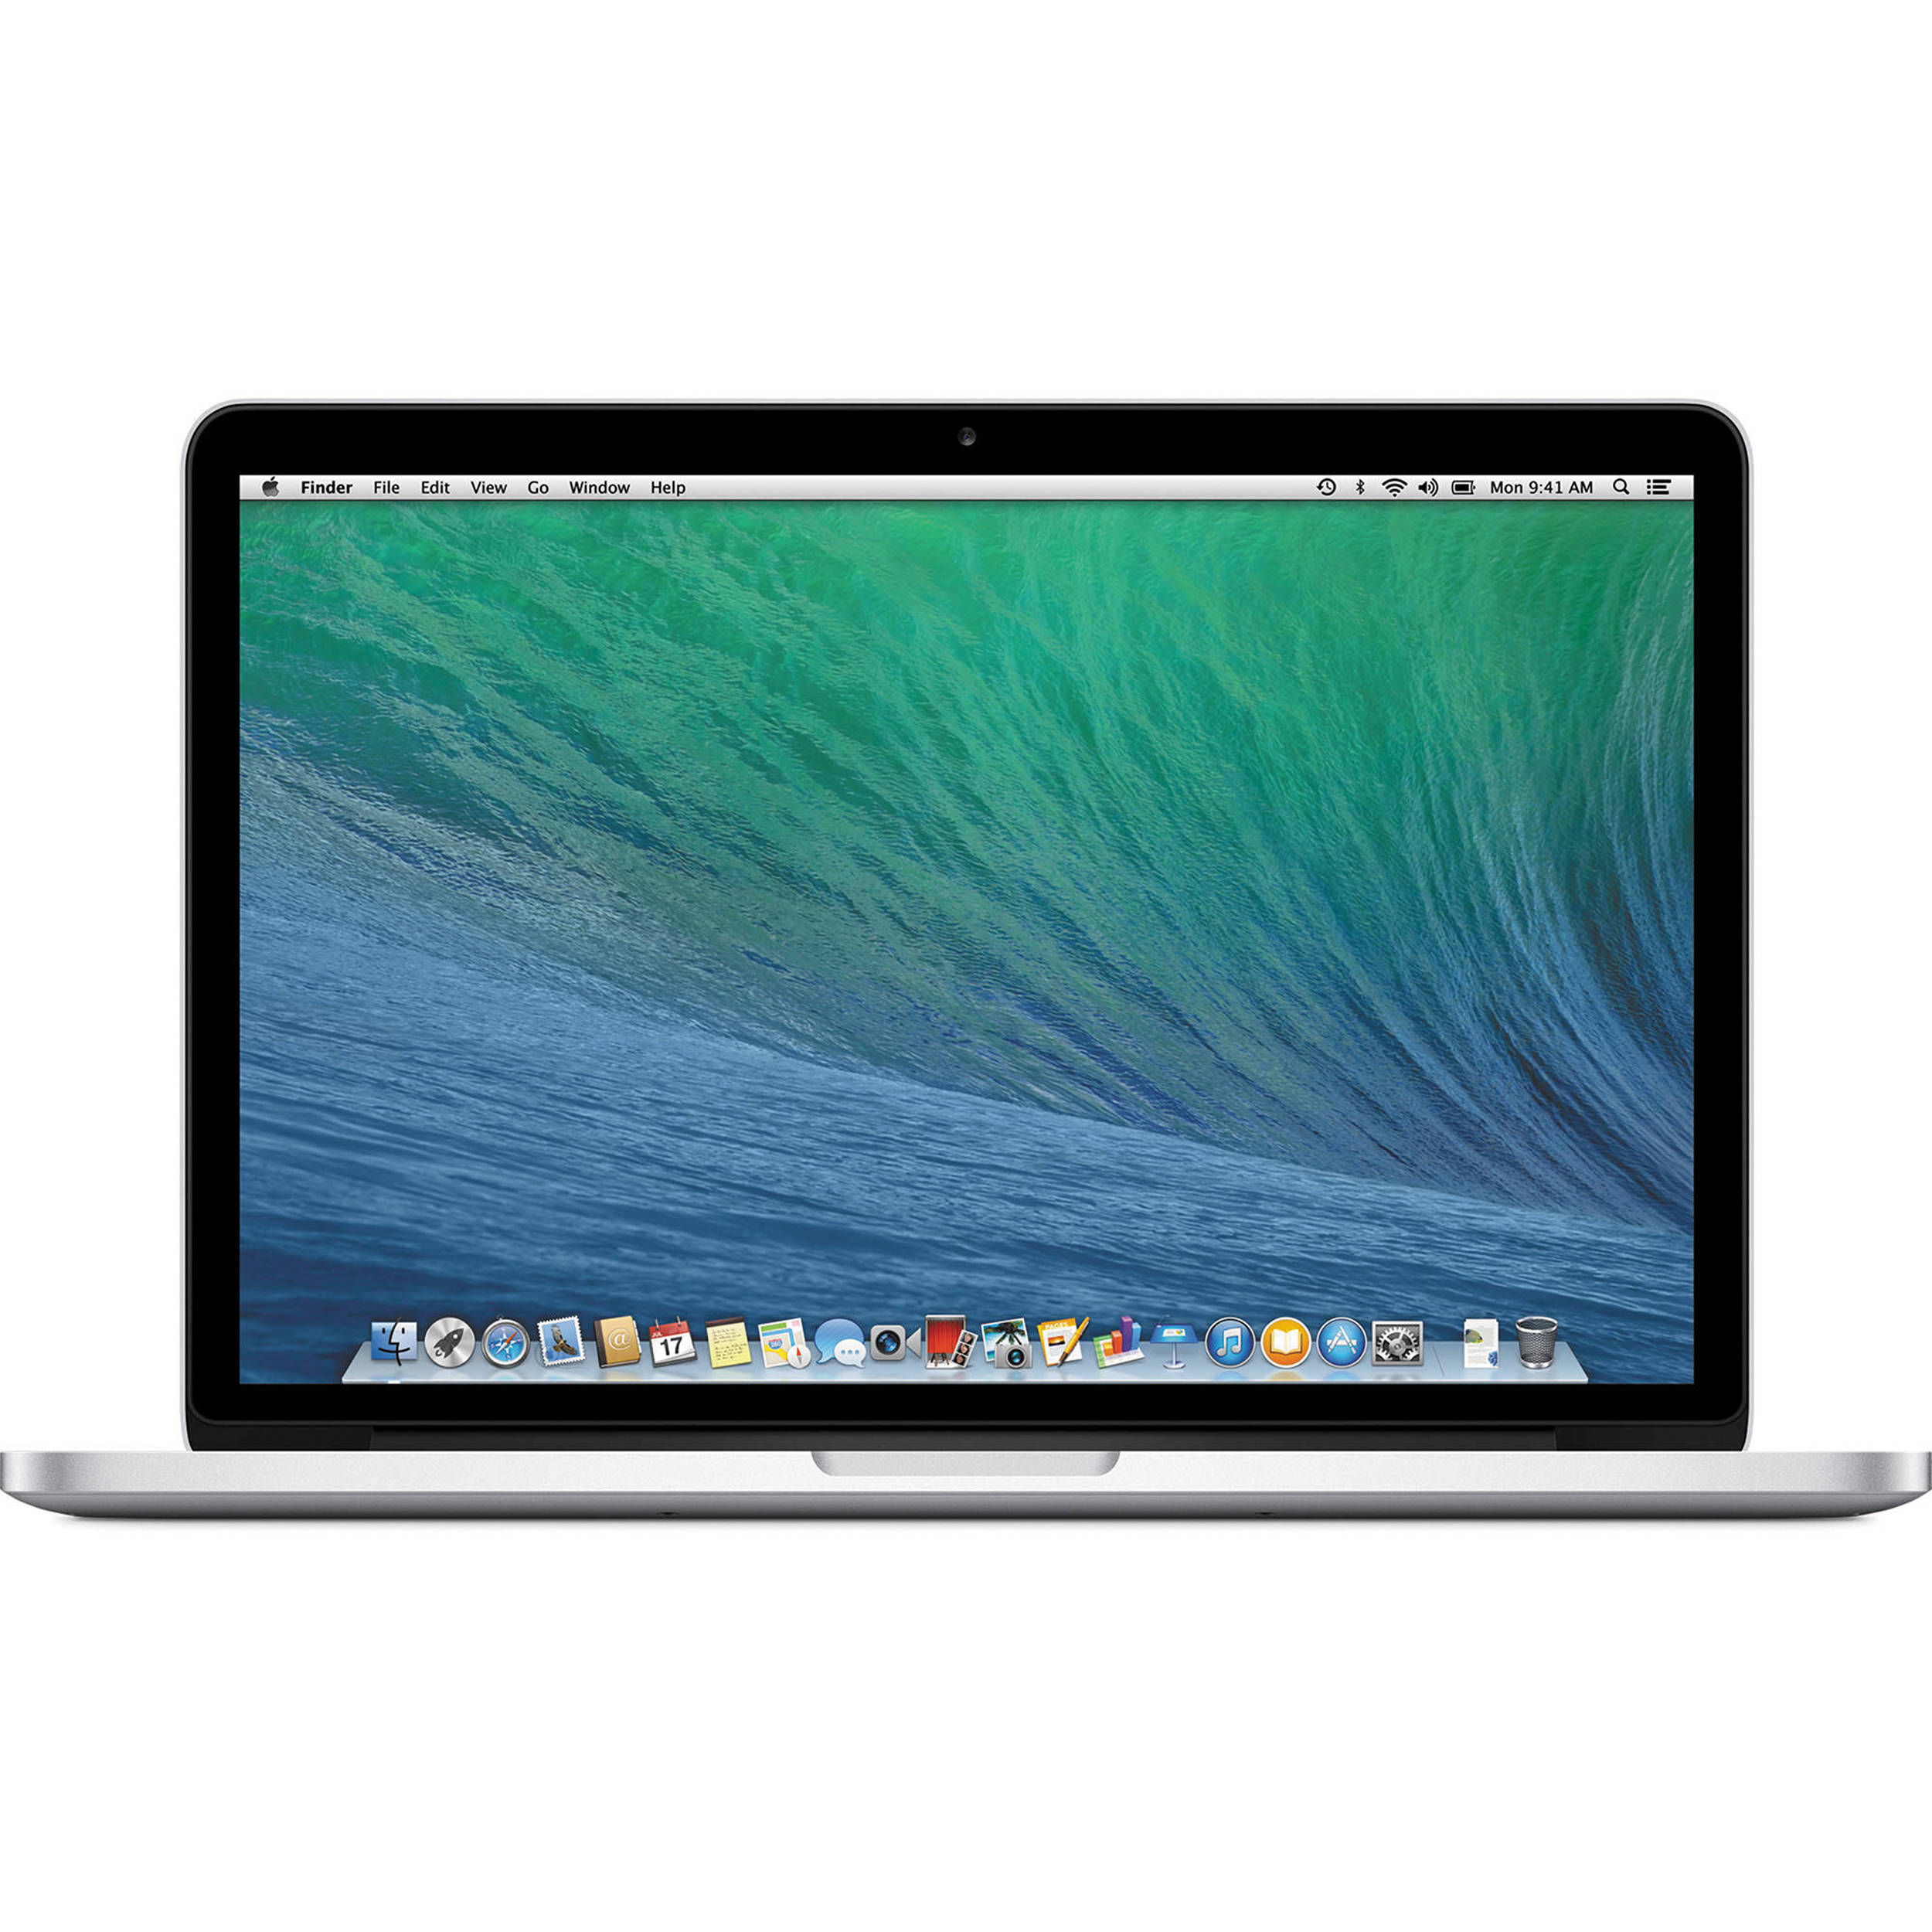 Apple 133 Macbook Pro Notebook Computer Z0qa Me8641 Bh Wiring Diagramselectrical Photosmovies Photo Albums Ring Circuit With Retina Display Late